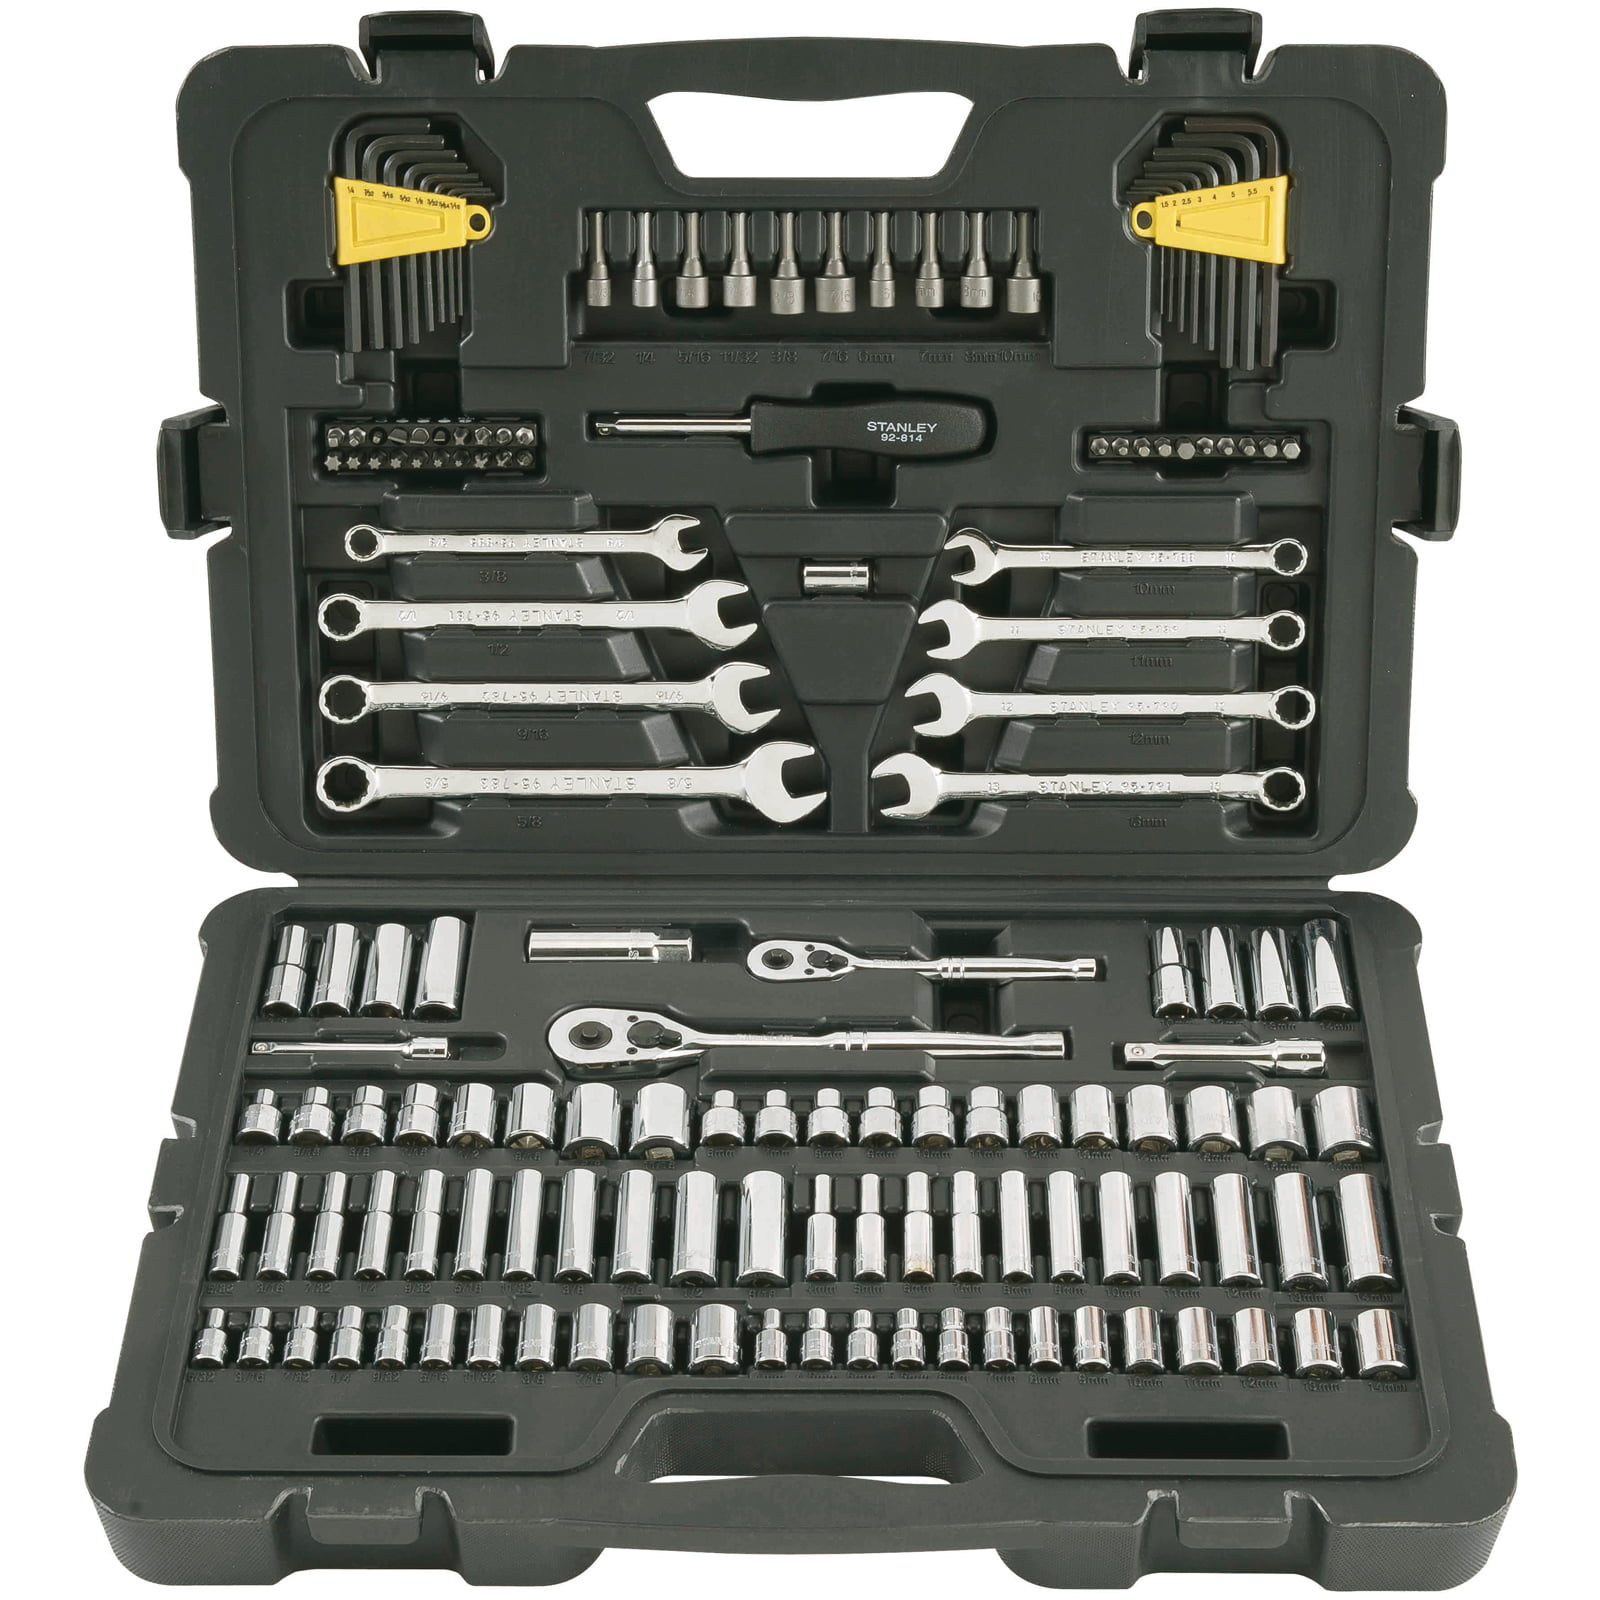 STANLEY 145-Piece Mechanics Tool Set, Chrome | STMT71653 by Stanley Black & Decker